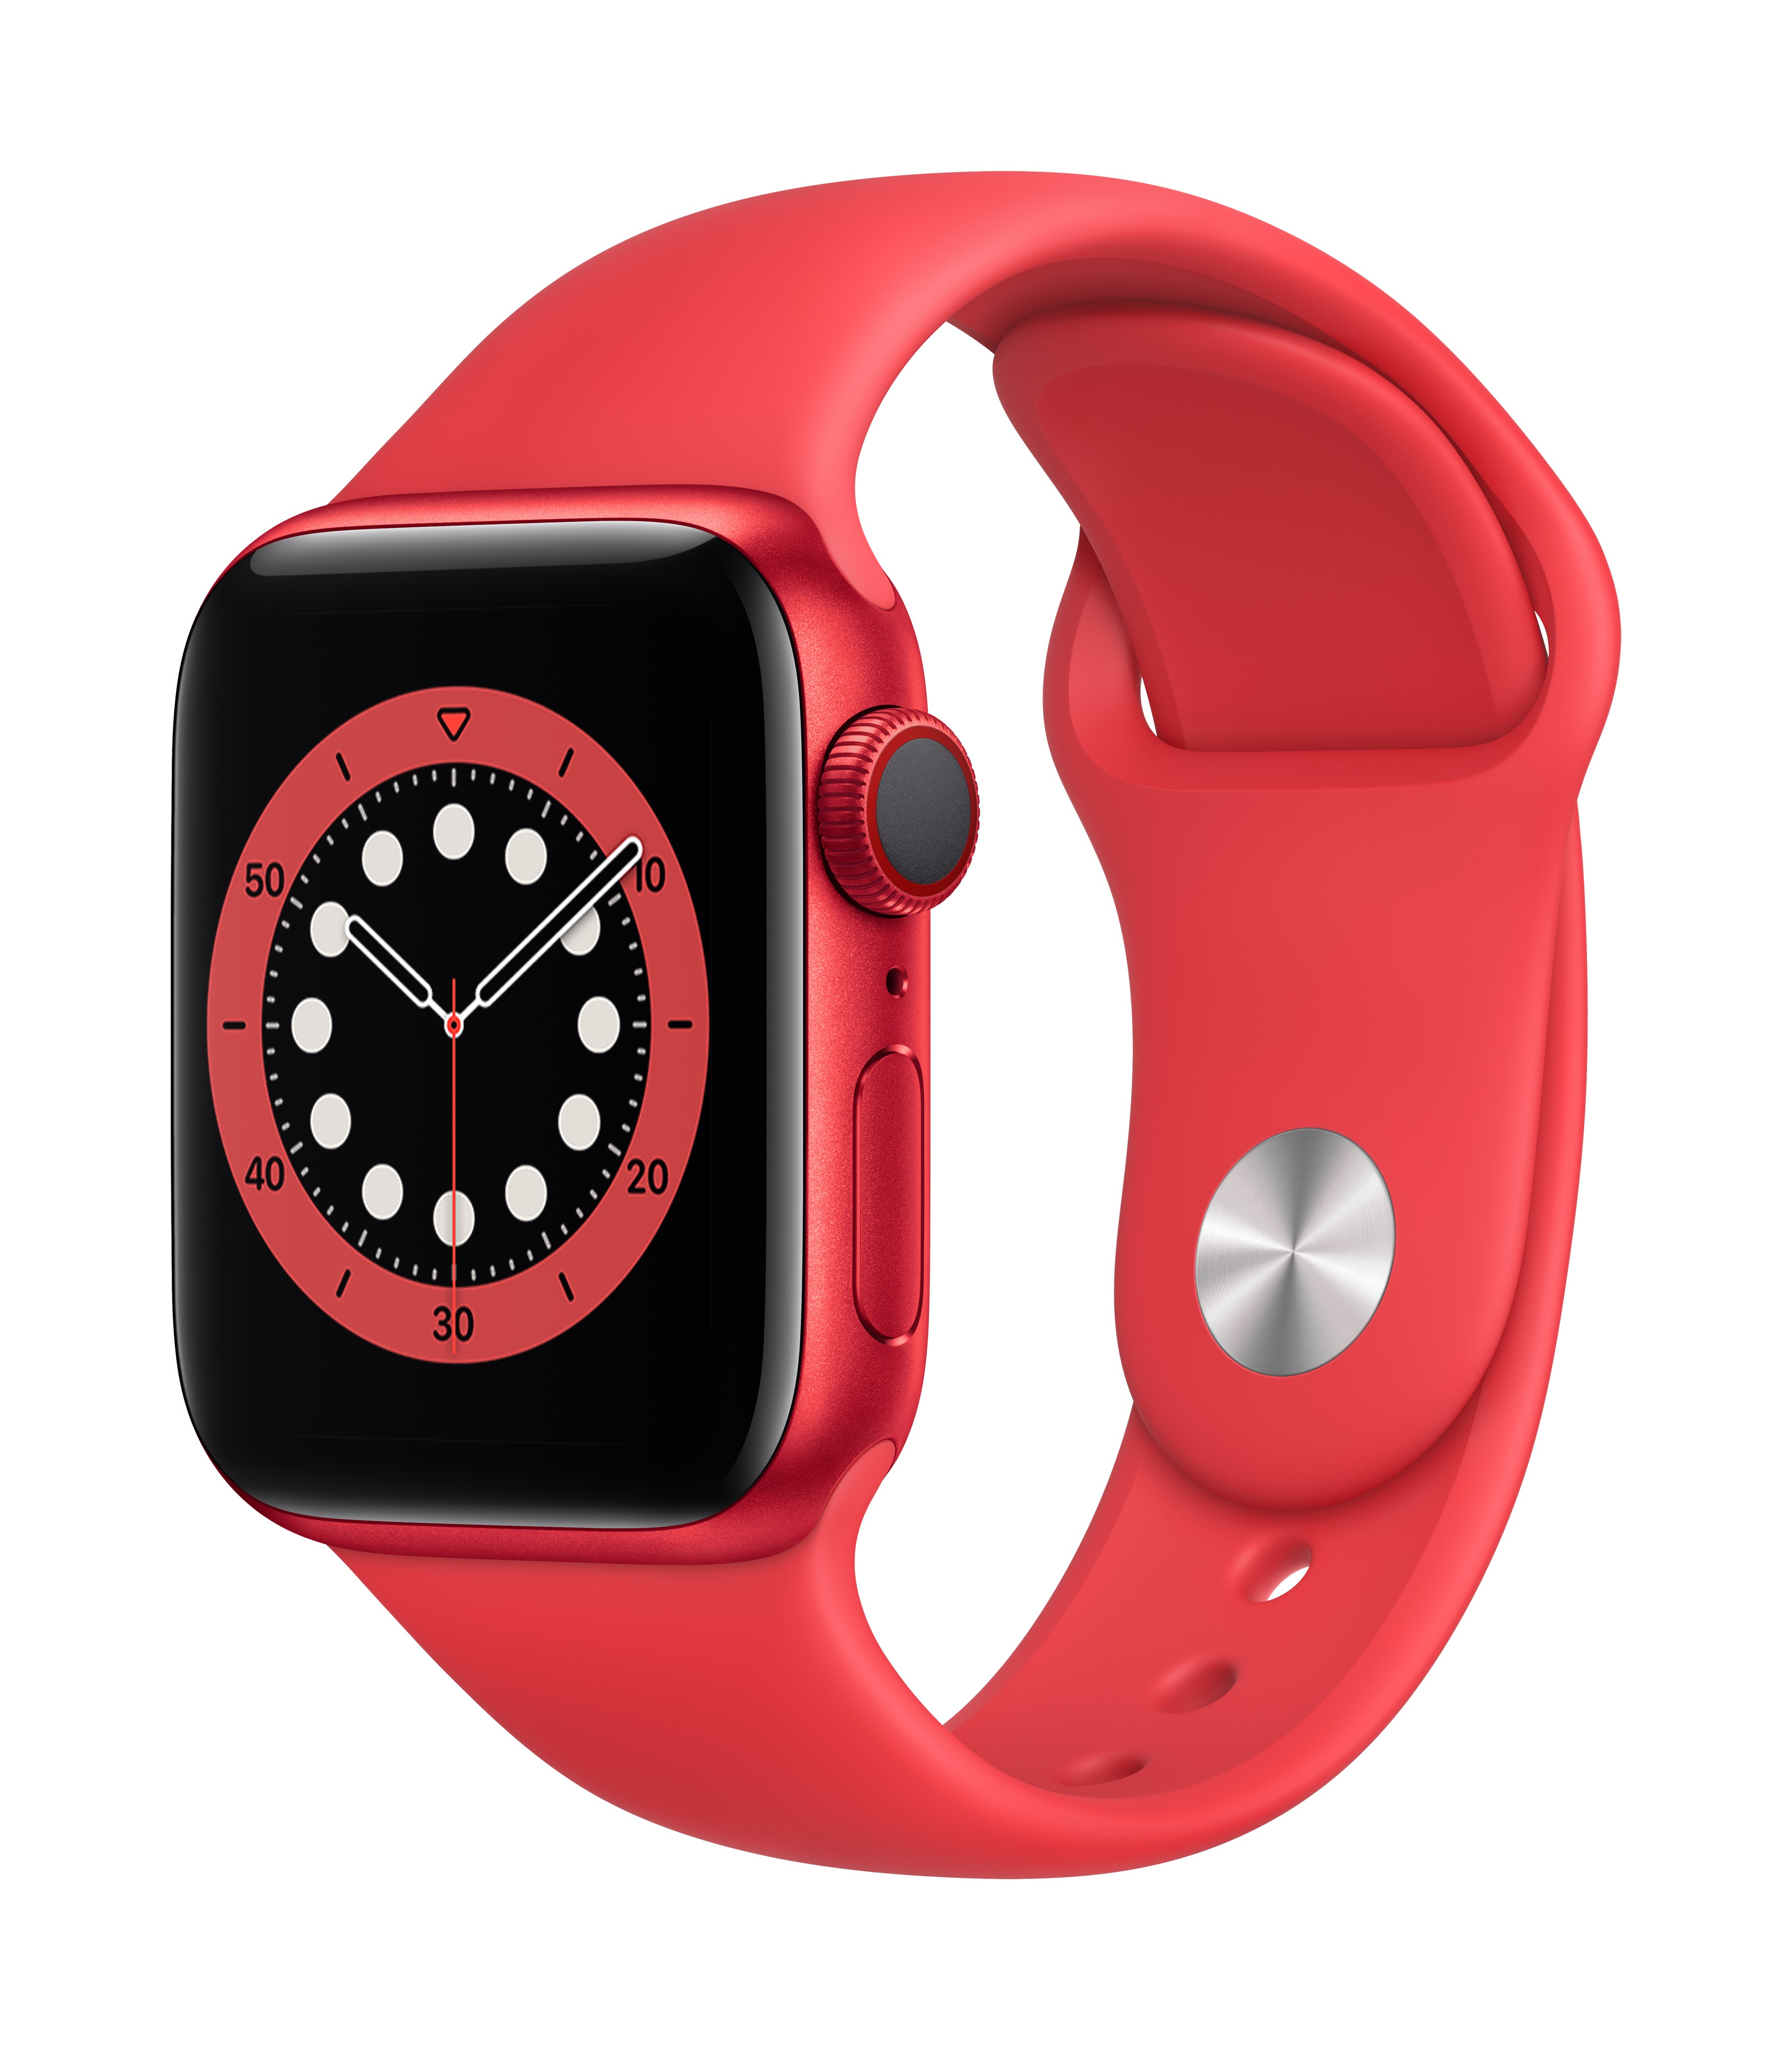 Apple Watch Series 6 GPS + Cellular 40mm PRODUCT(RED) Aluminum w/ PRODUCT(RED) Sport Band at Small Dog Electronics